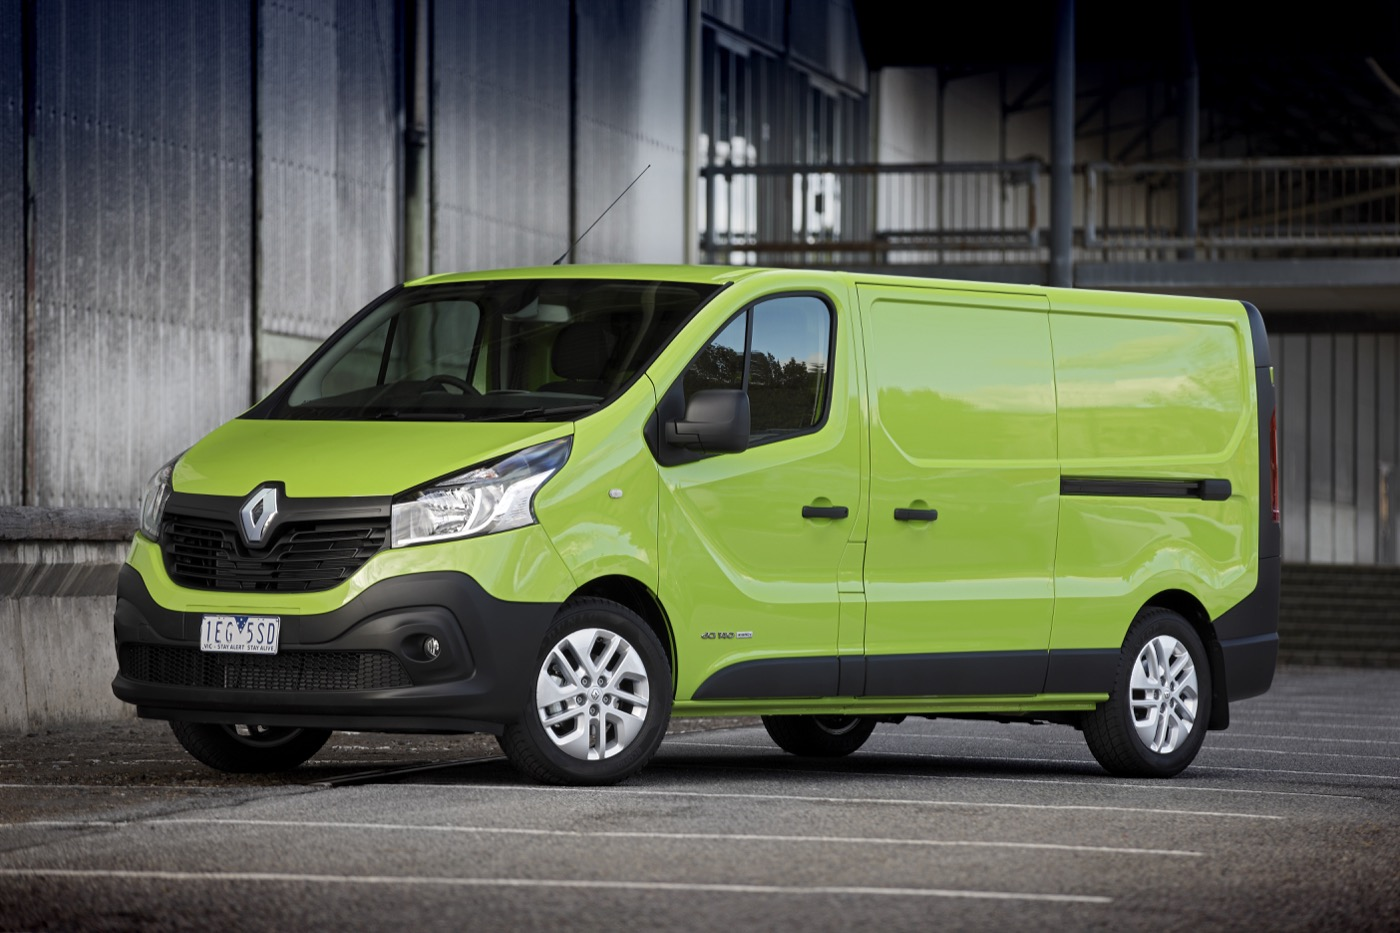 First Team Subaru >> Review - 2015 Renault Trafic Review and First Drive